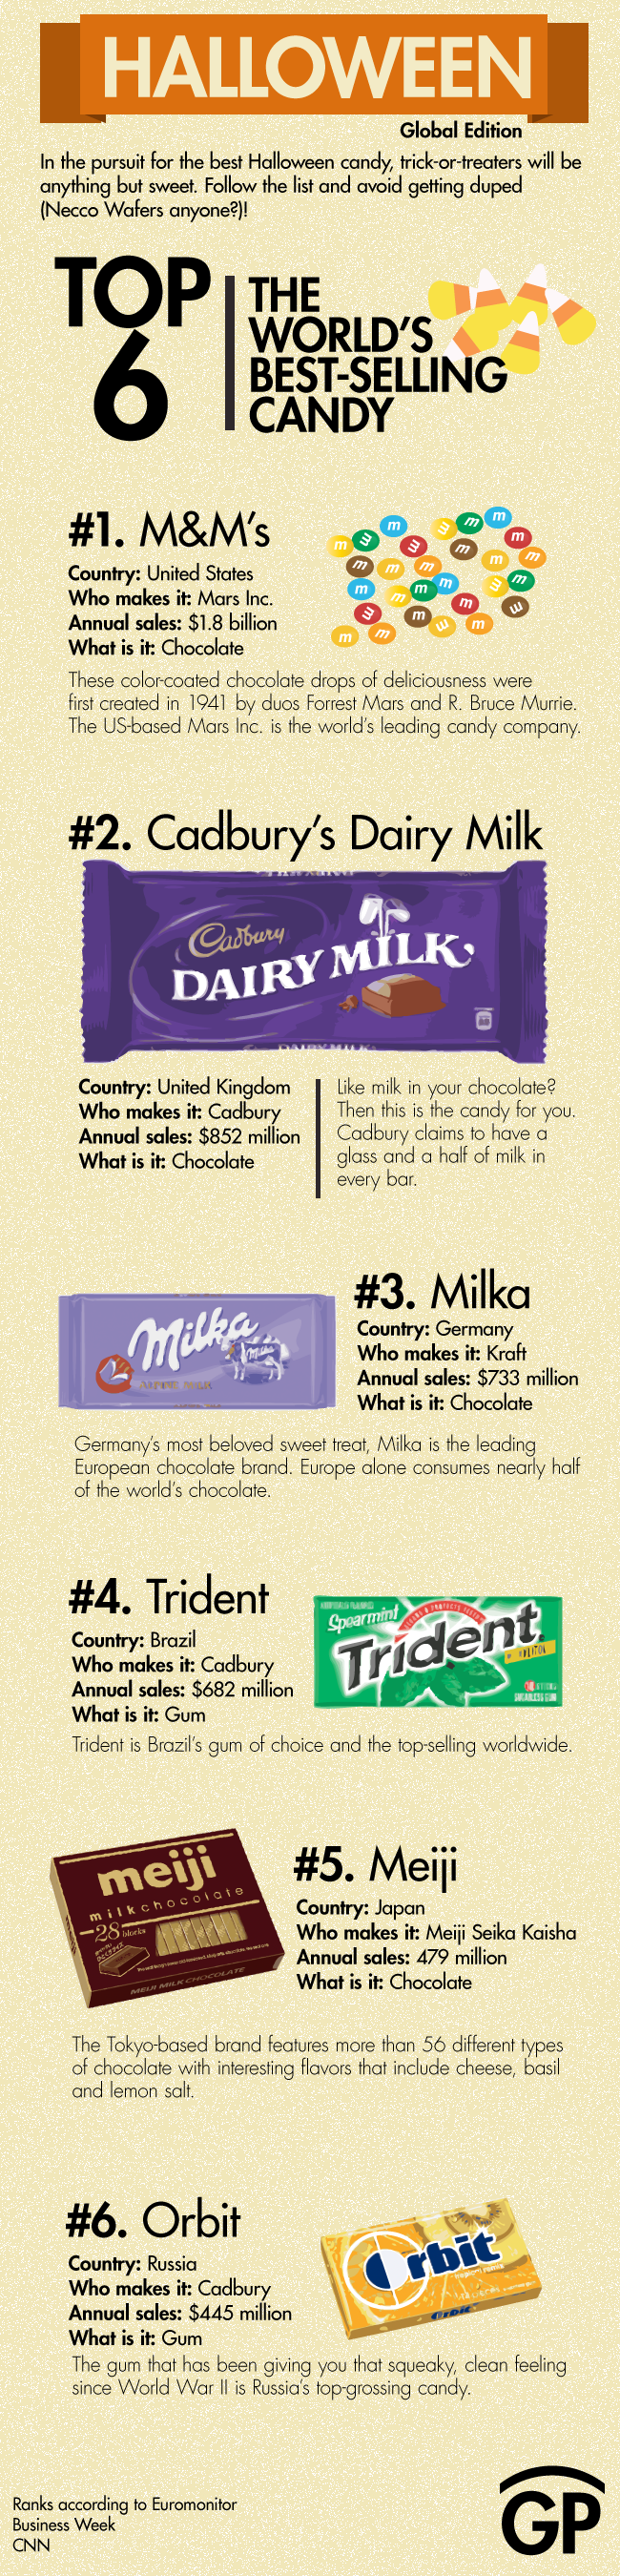 World's Top 6 Best Selling Candies